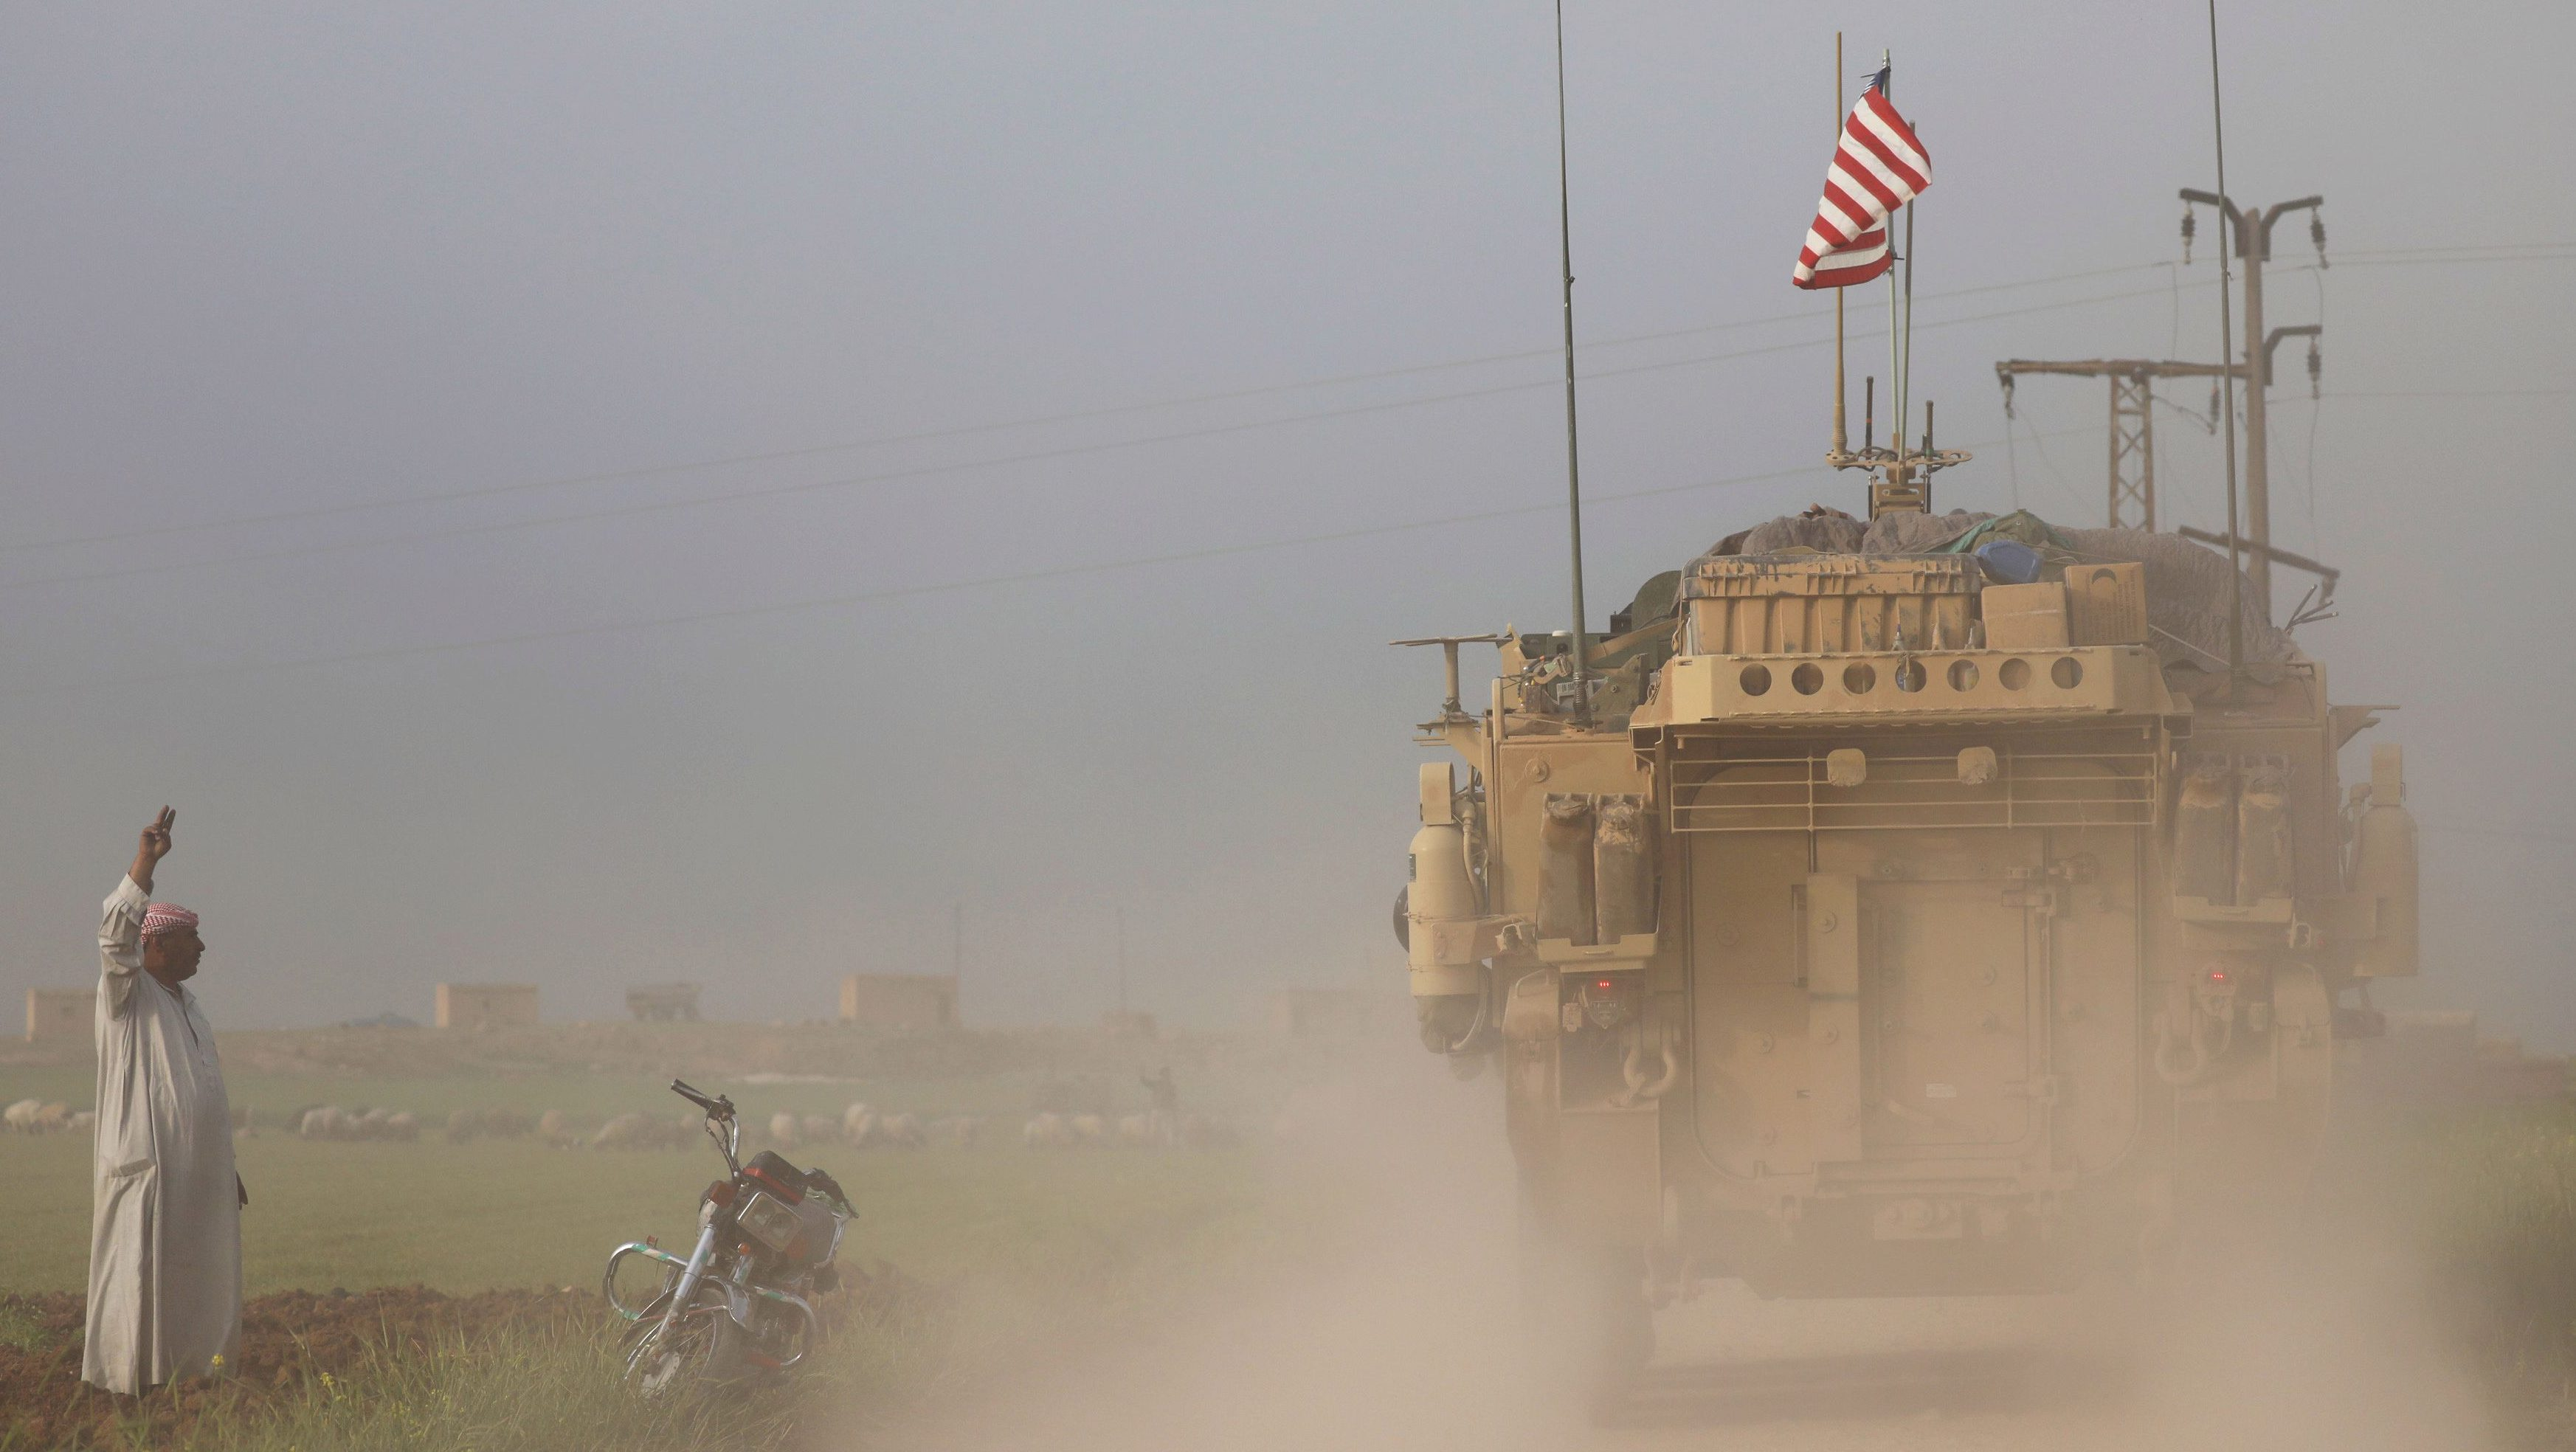 Donald Trump threatens Russia and Syria with missiles: The US military budget shows it's ready to spend more in Syria.